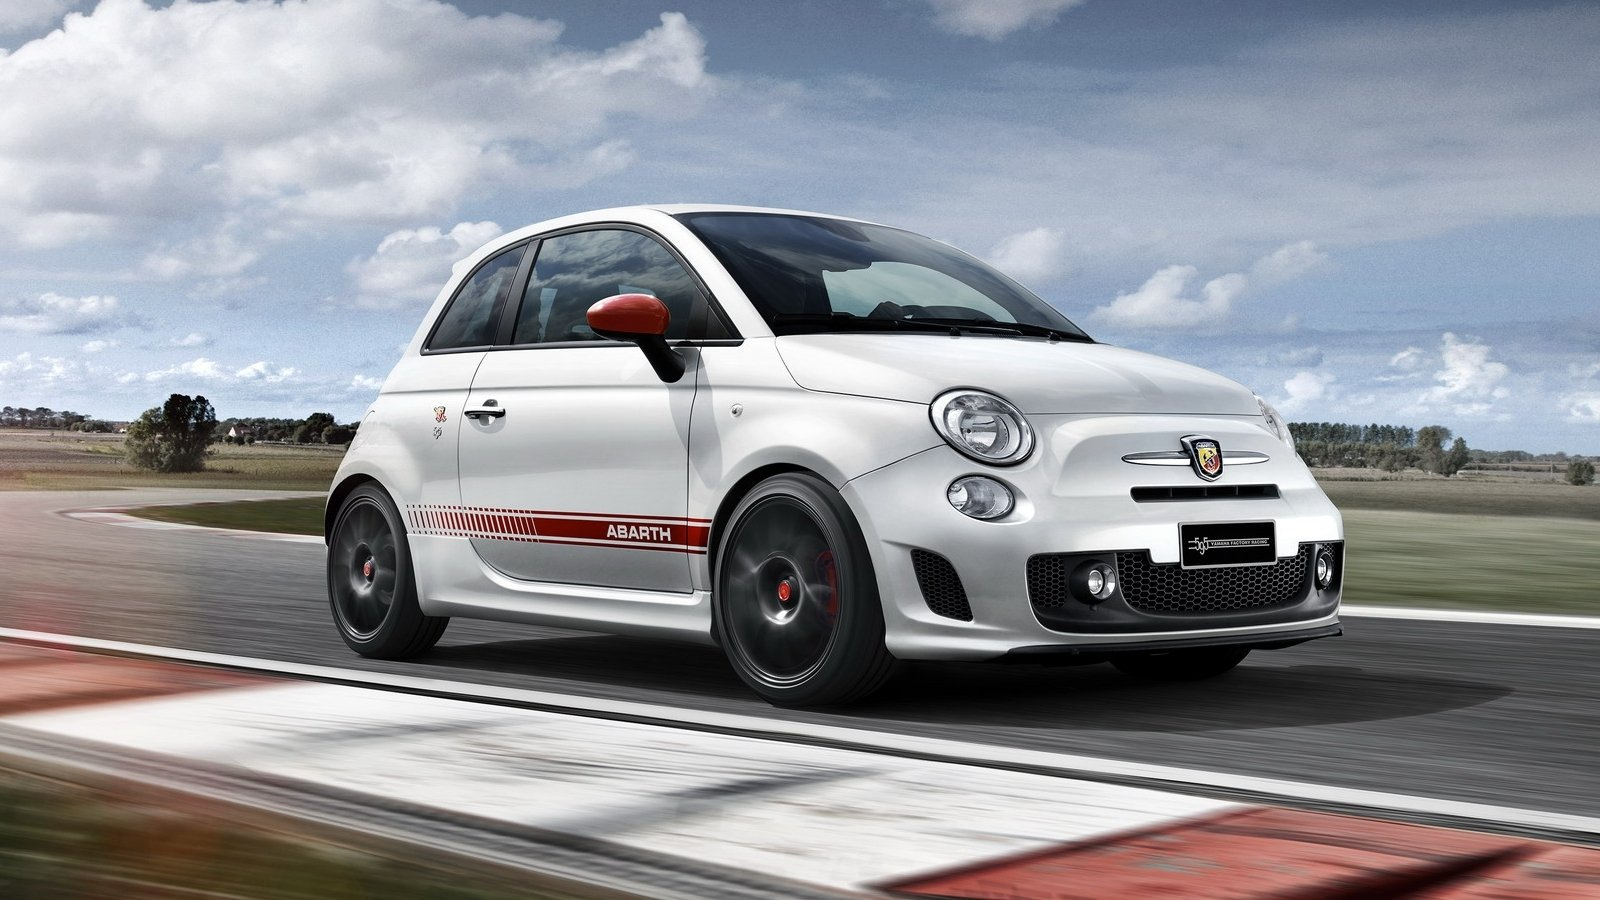 Japanese Car Brands >> 2016 Abarth 595 Yamaha Factory Racing Edition Review - Top